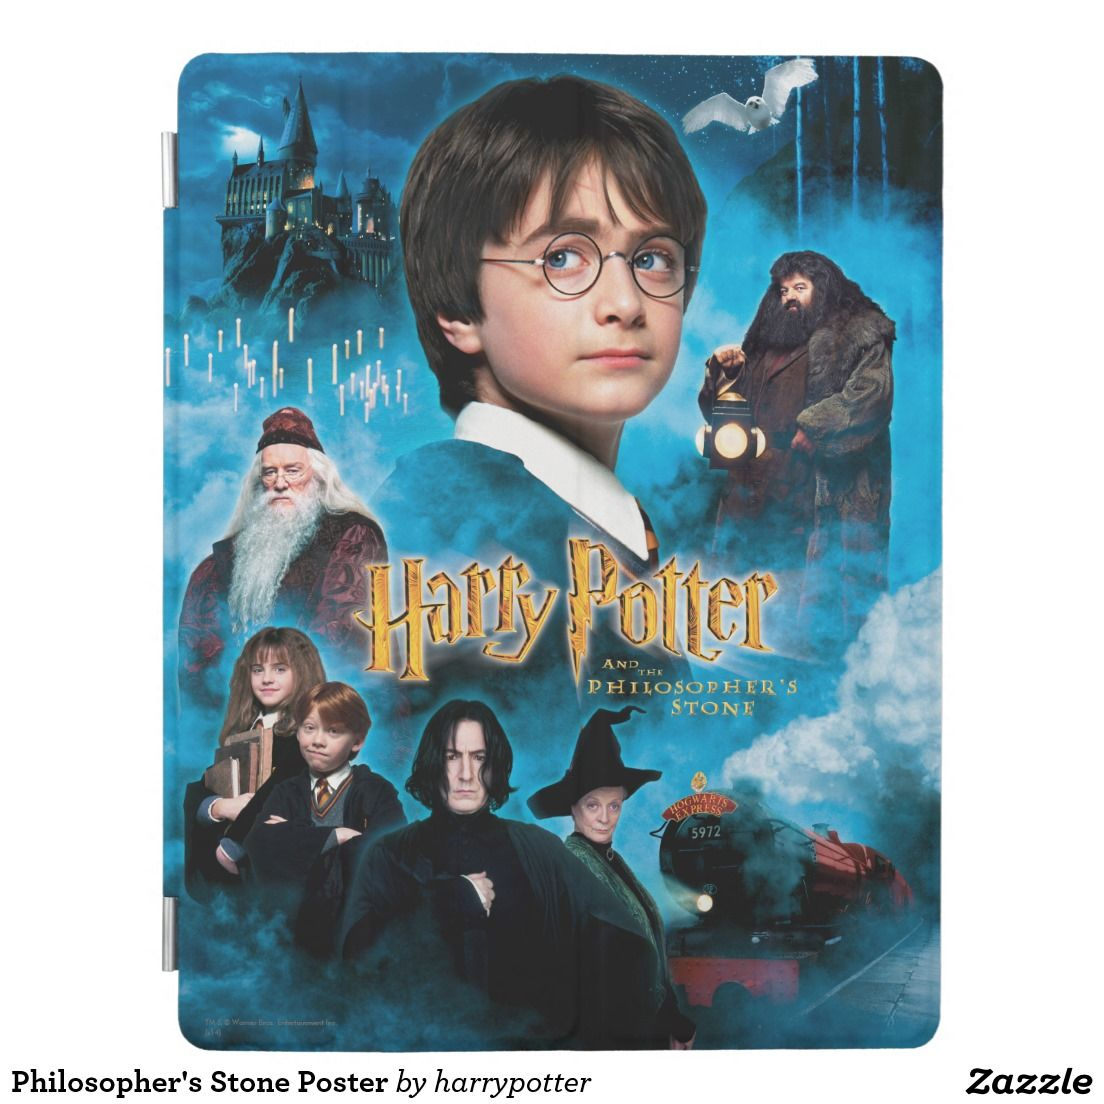 Philosopher S Stone Poster Ipad Smart Cover Zazzle Com Harry Potter Movie Posters Philosophers Stone Free Movies Online